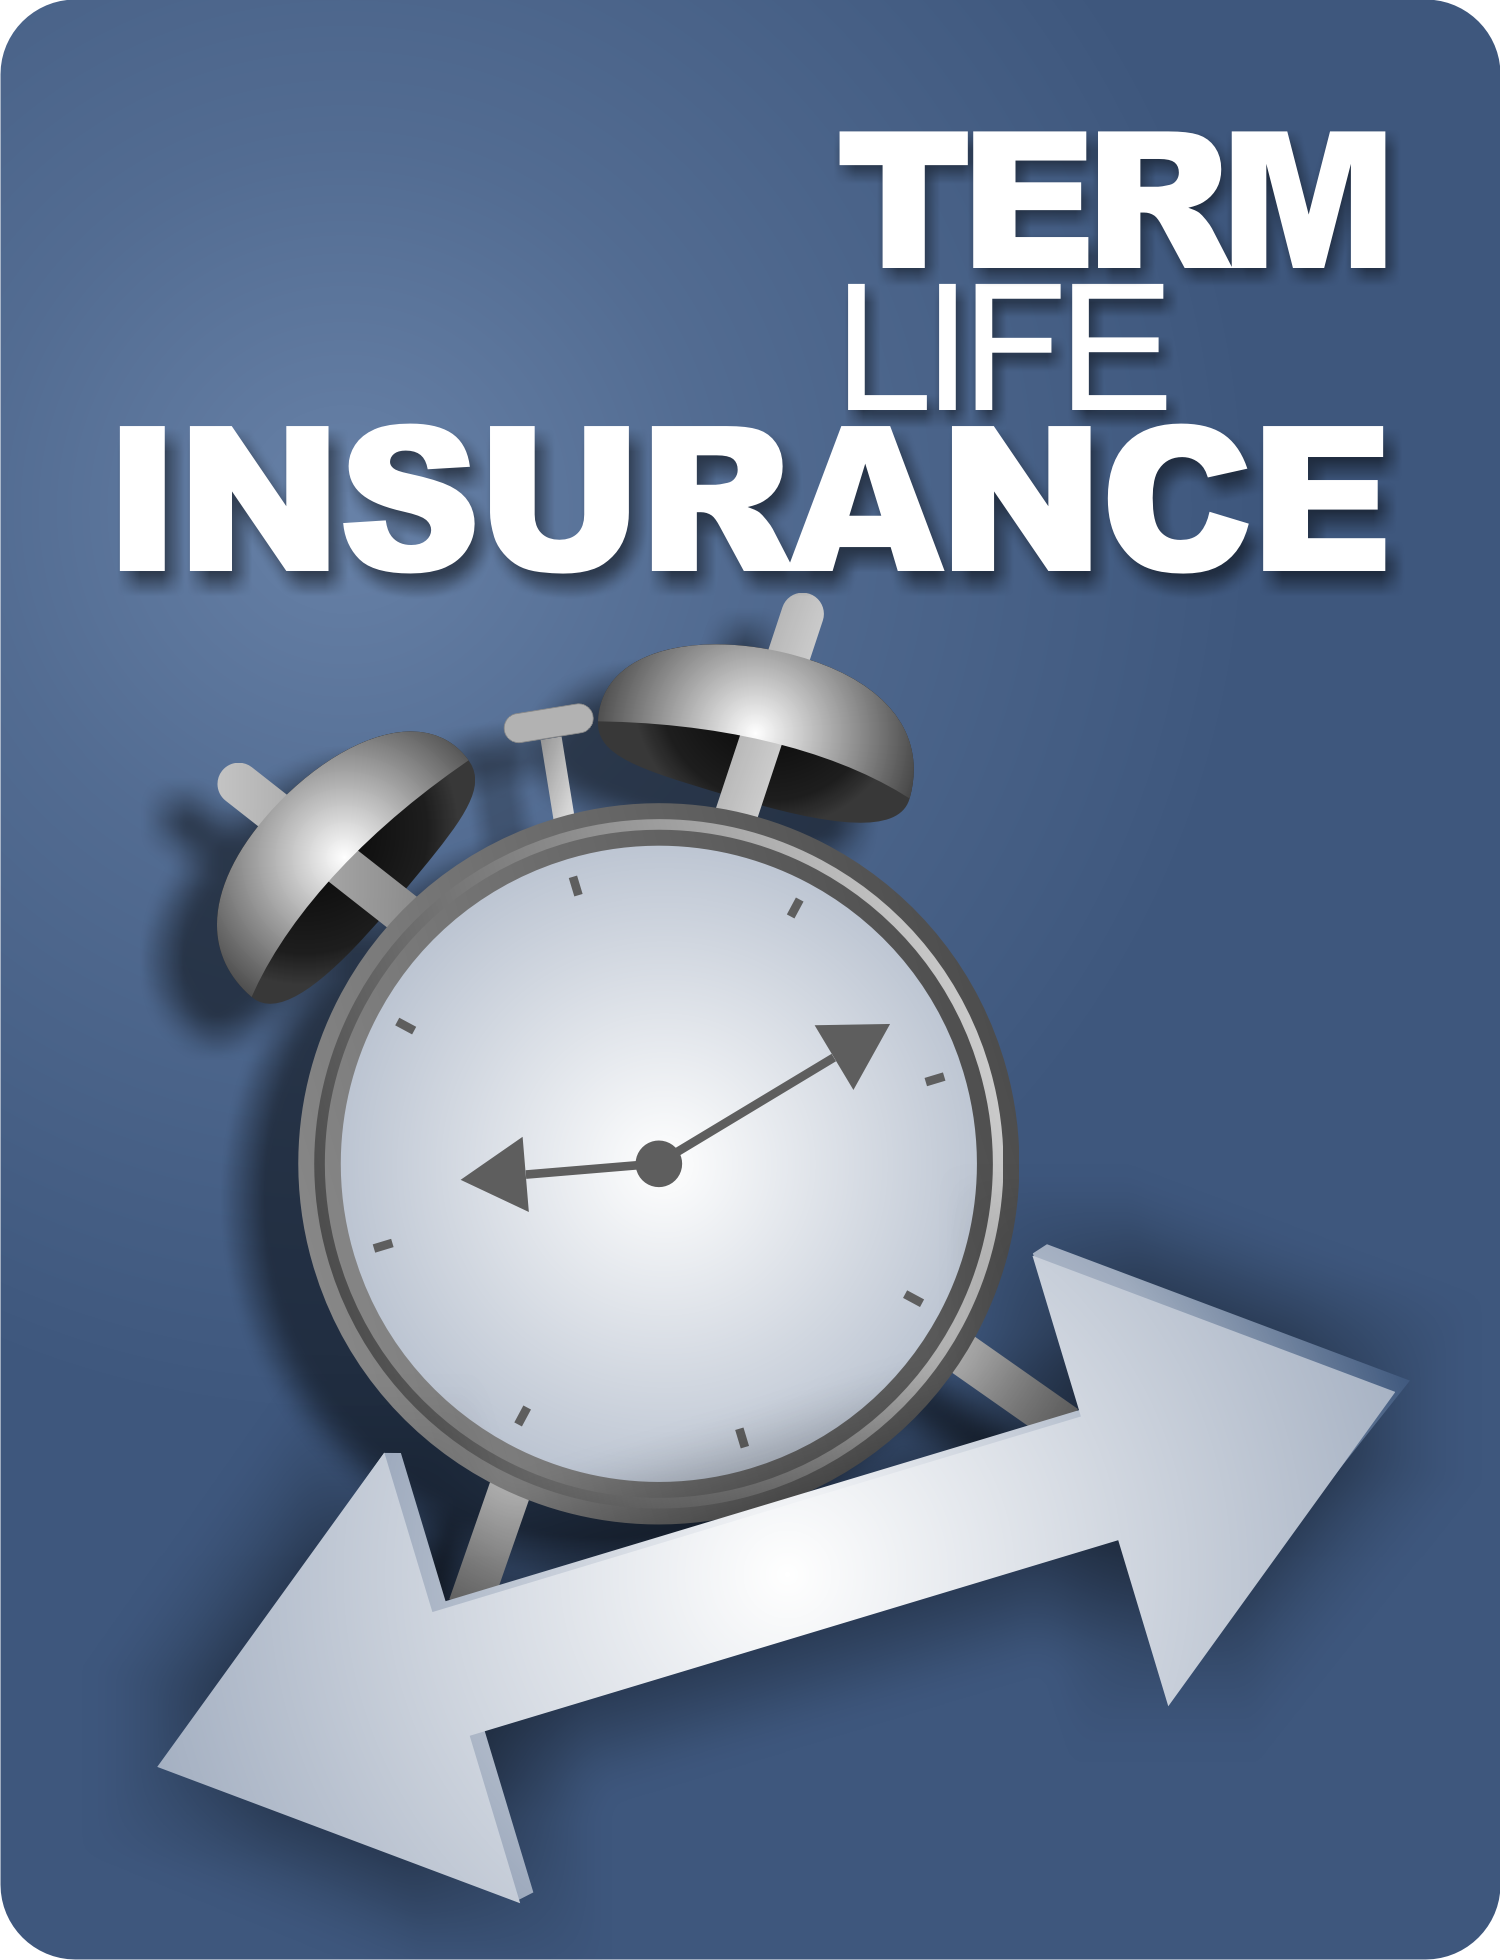 Term Life Insurance Rate Quotes Classy Don't Wait Until It's Too Late Protect Your Family With A Term